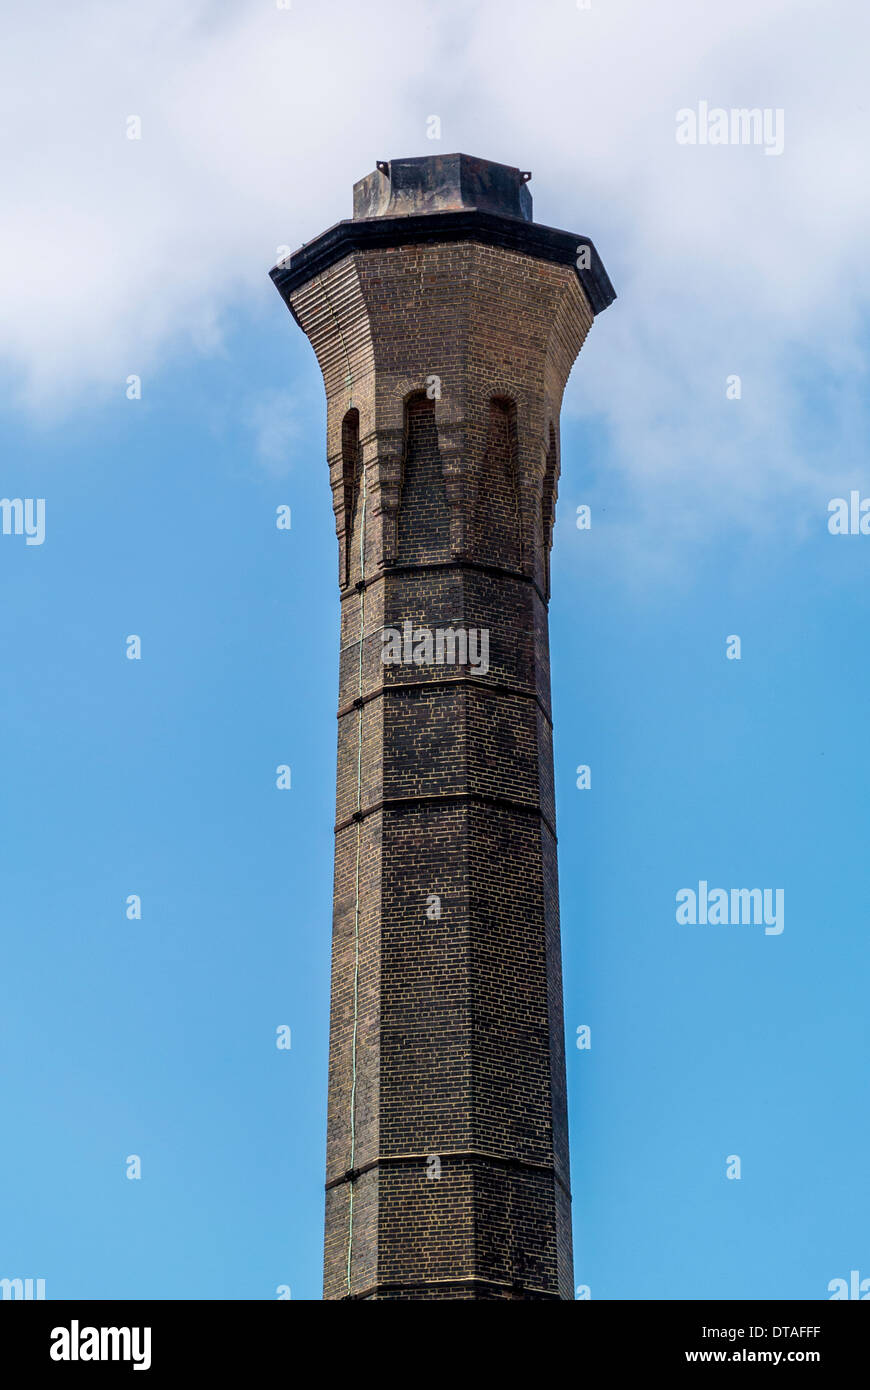 Old incinerator chimney. Foss Islands, York. - Stock Image